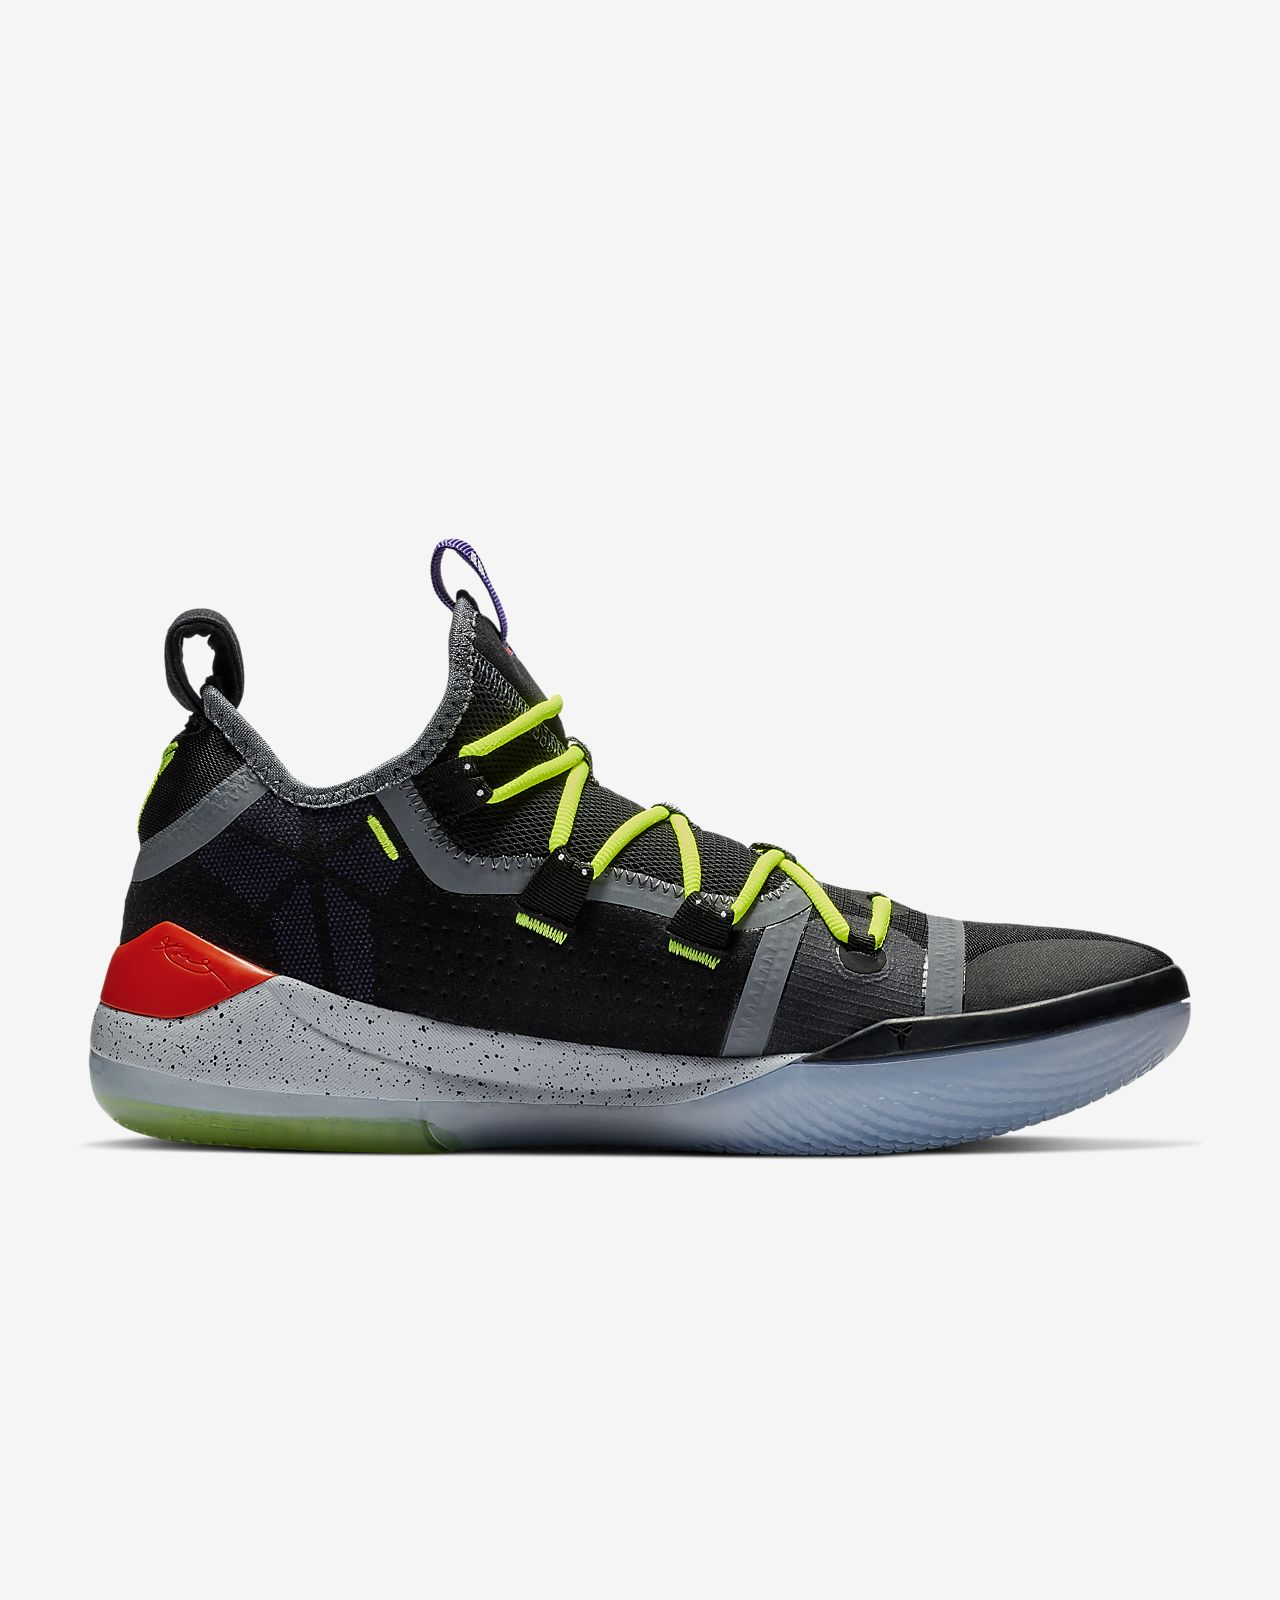 169d8be3535b Low Resolution Kobe AD Basketball Shoe Kobe AD Basketball Shoe